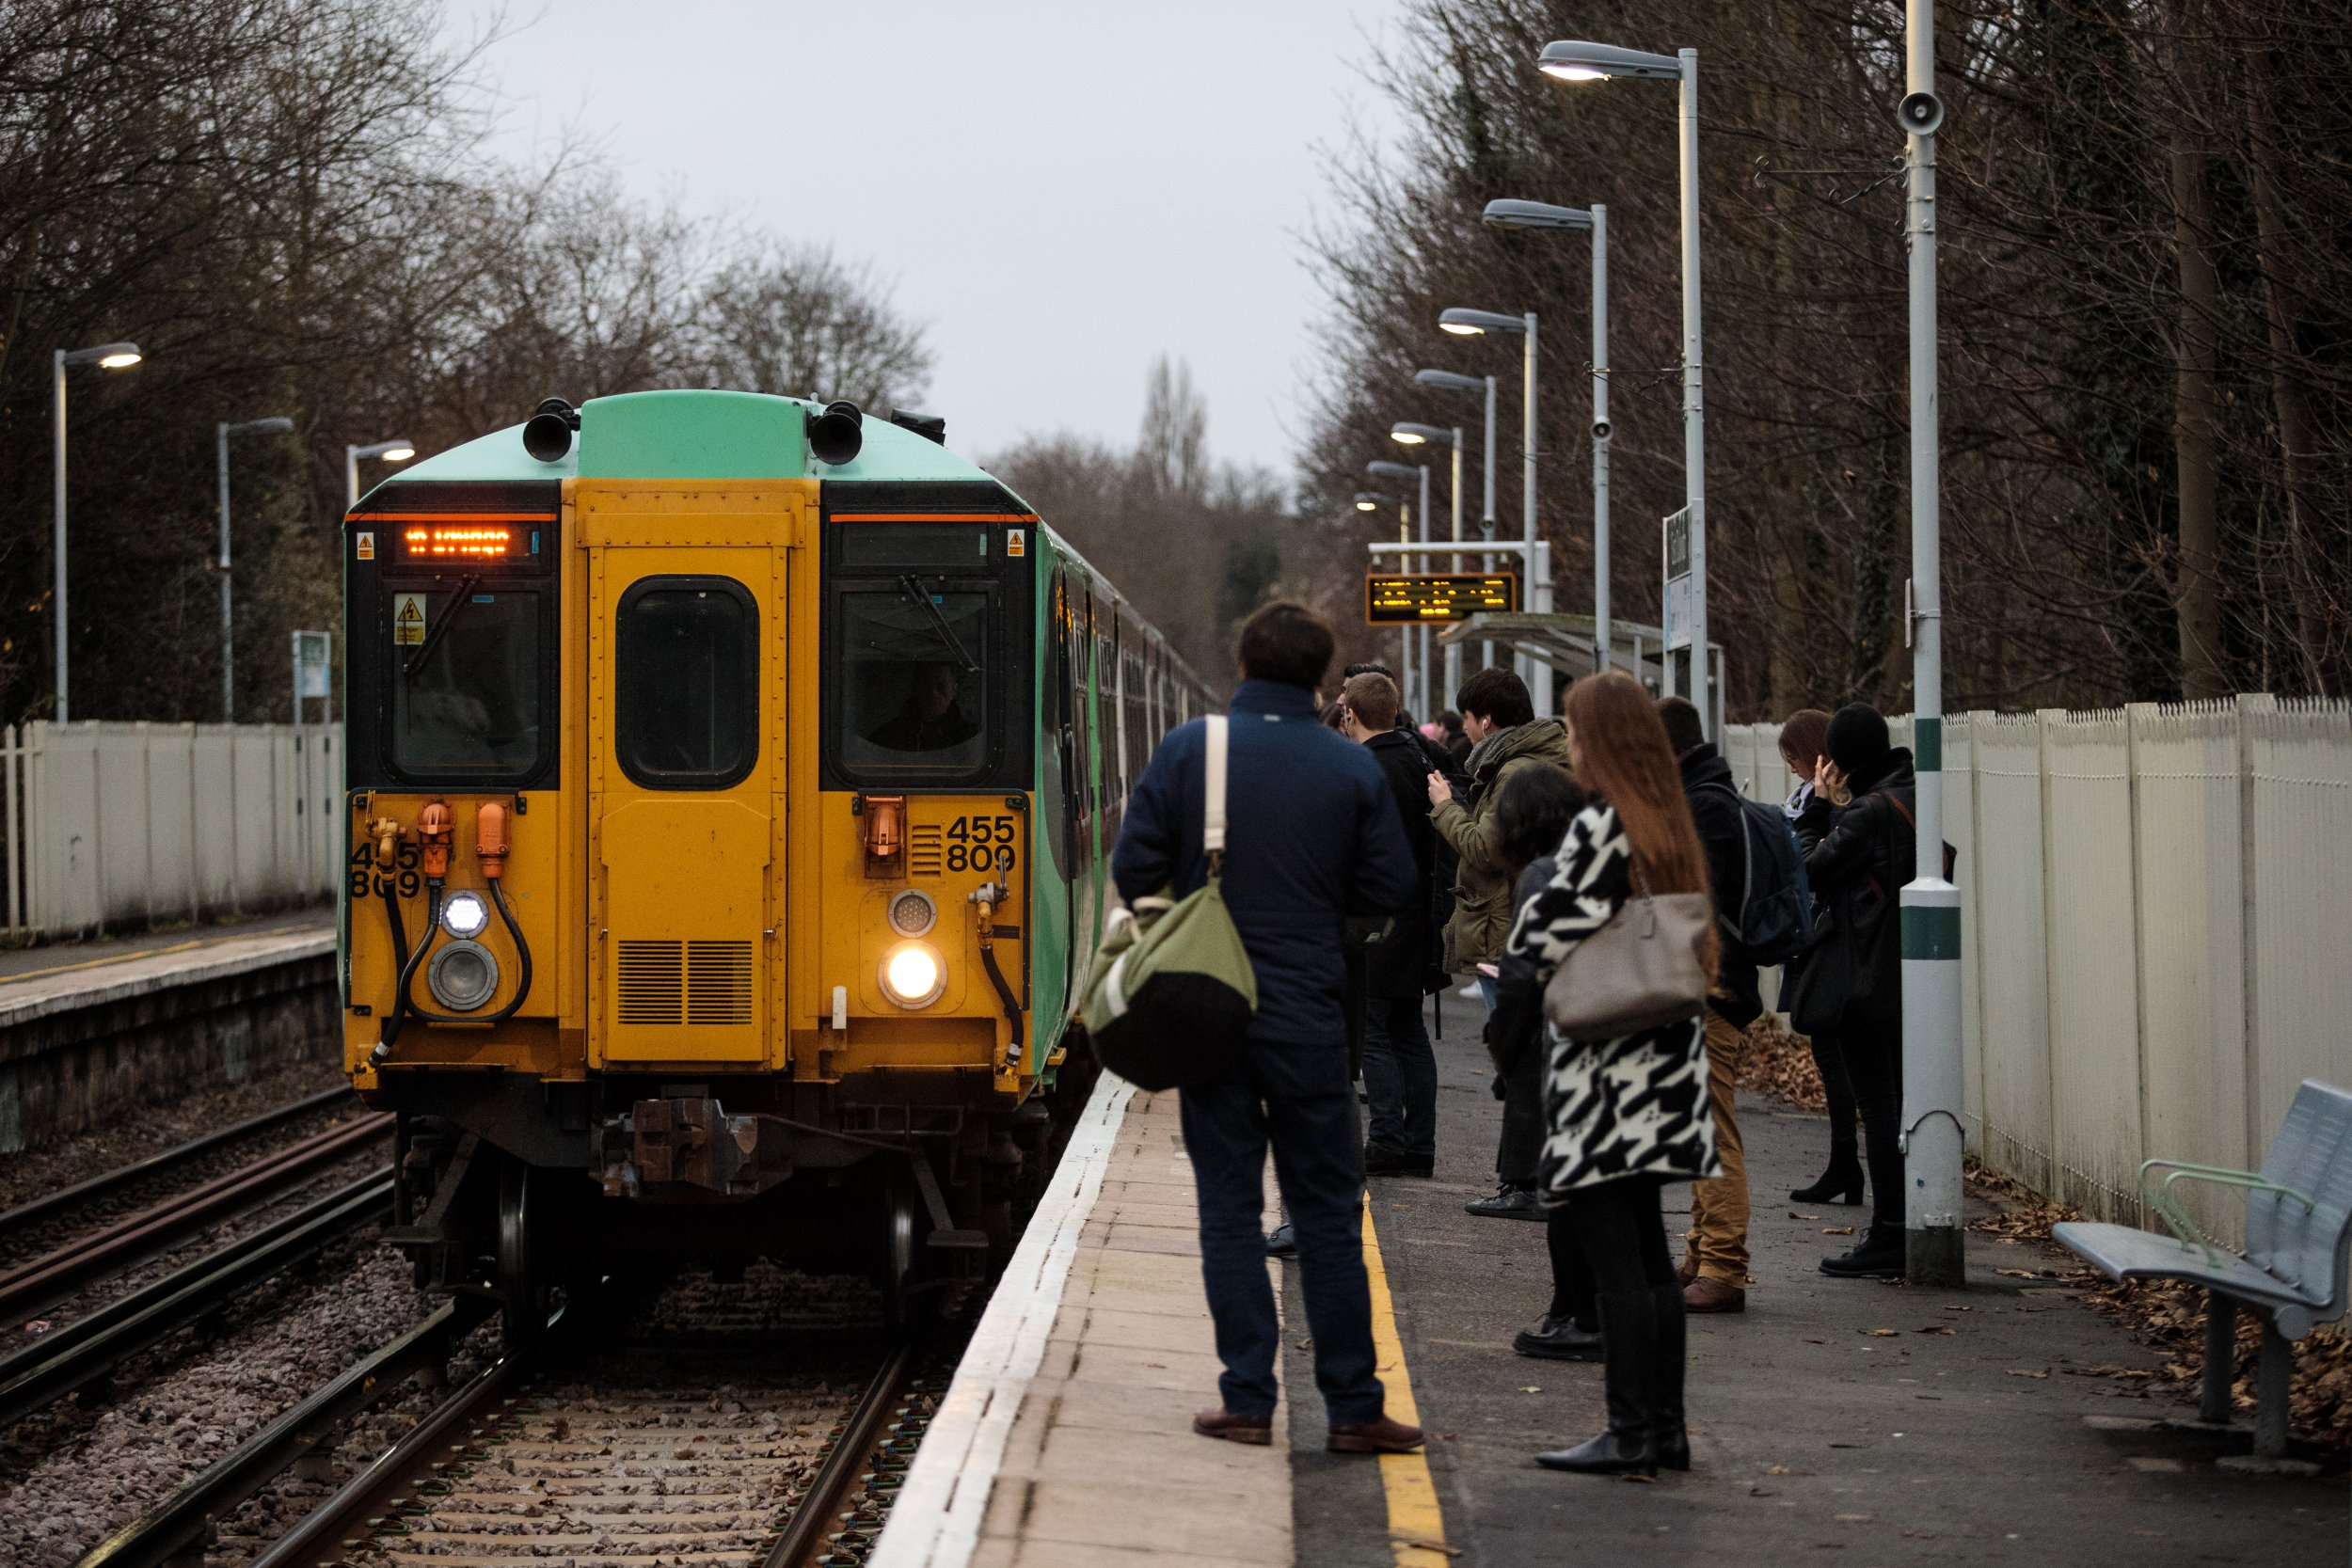 Rail passengers warned to expect 3.5% rise in fares next year